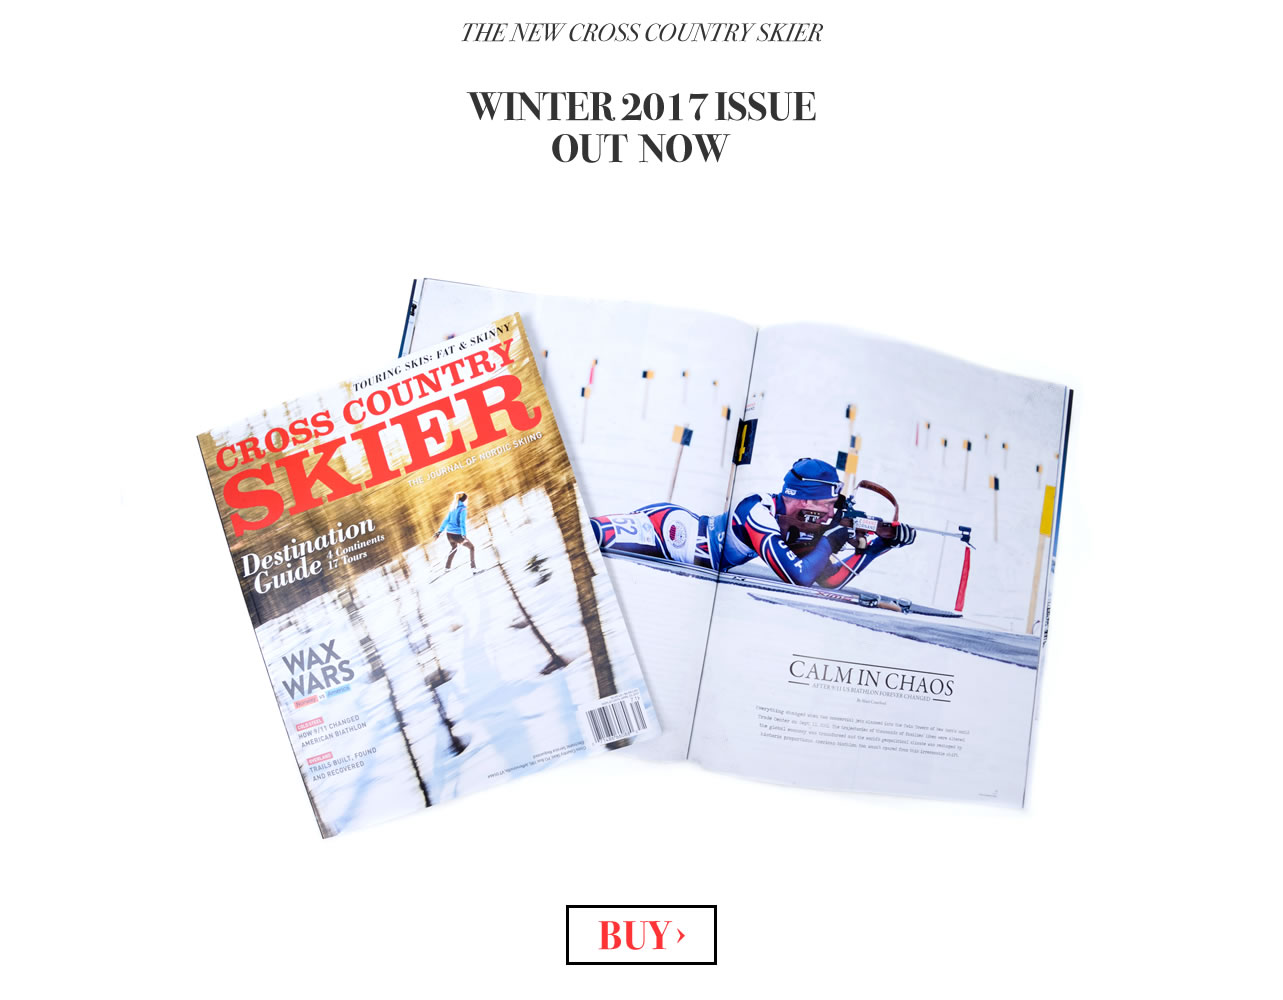 Cross Country Skier Magazine Winter 2017